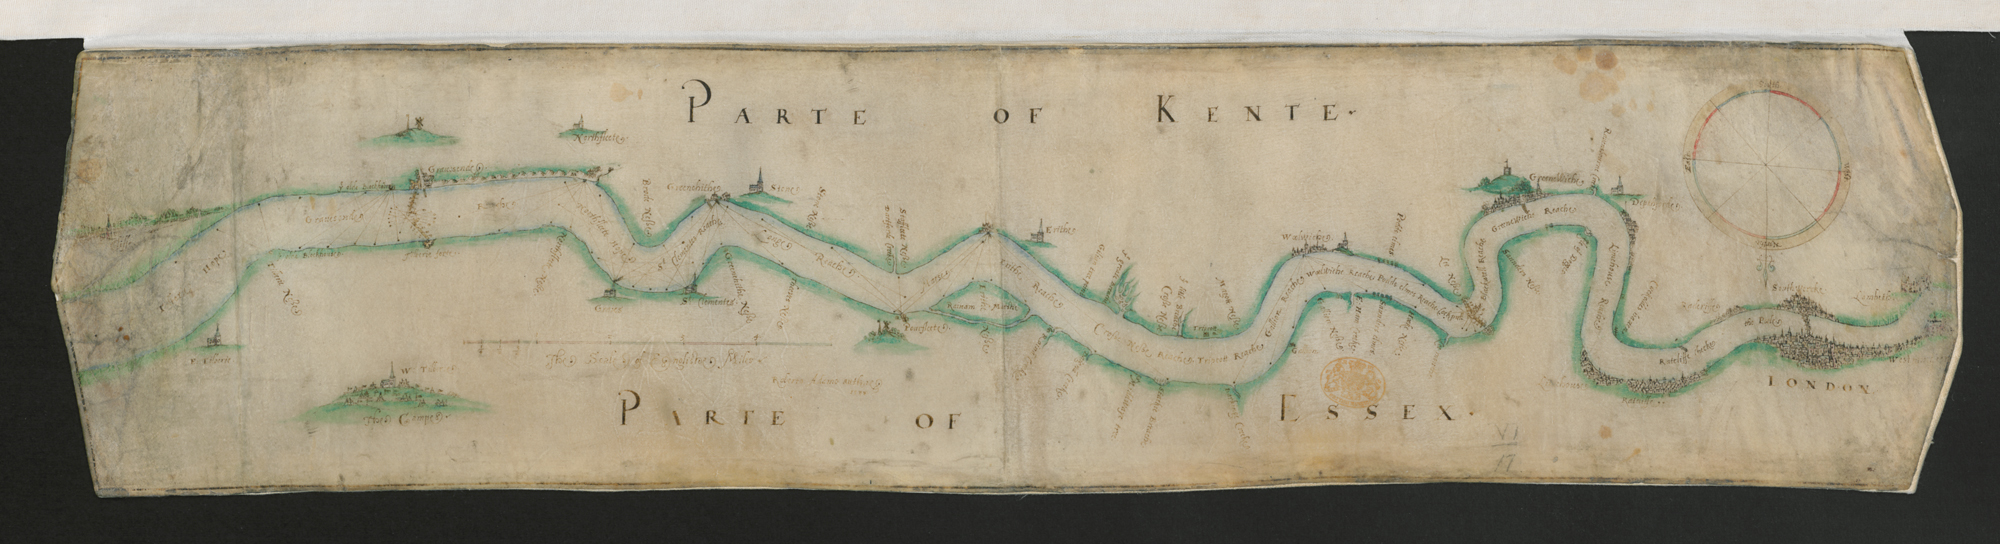 hand-drawn plan of the River Thames was owned by Queen Elizabeth I (